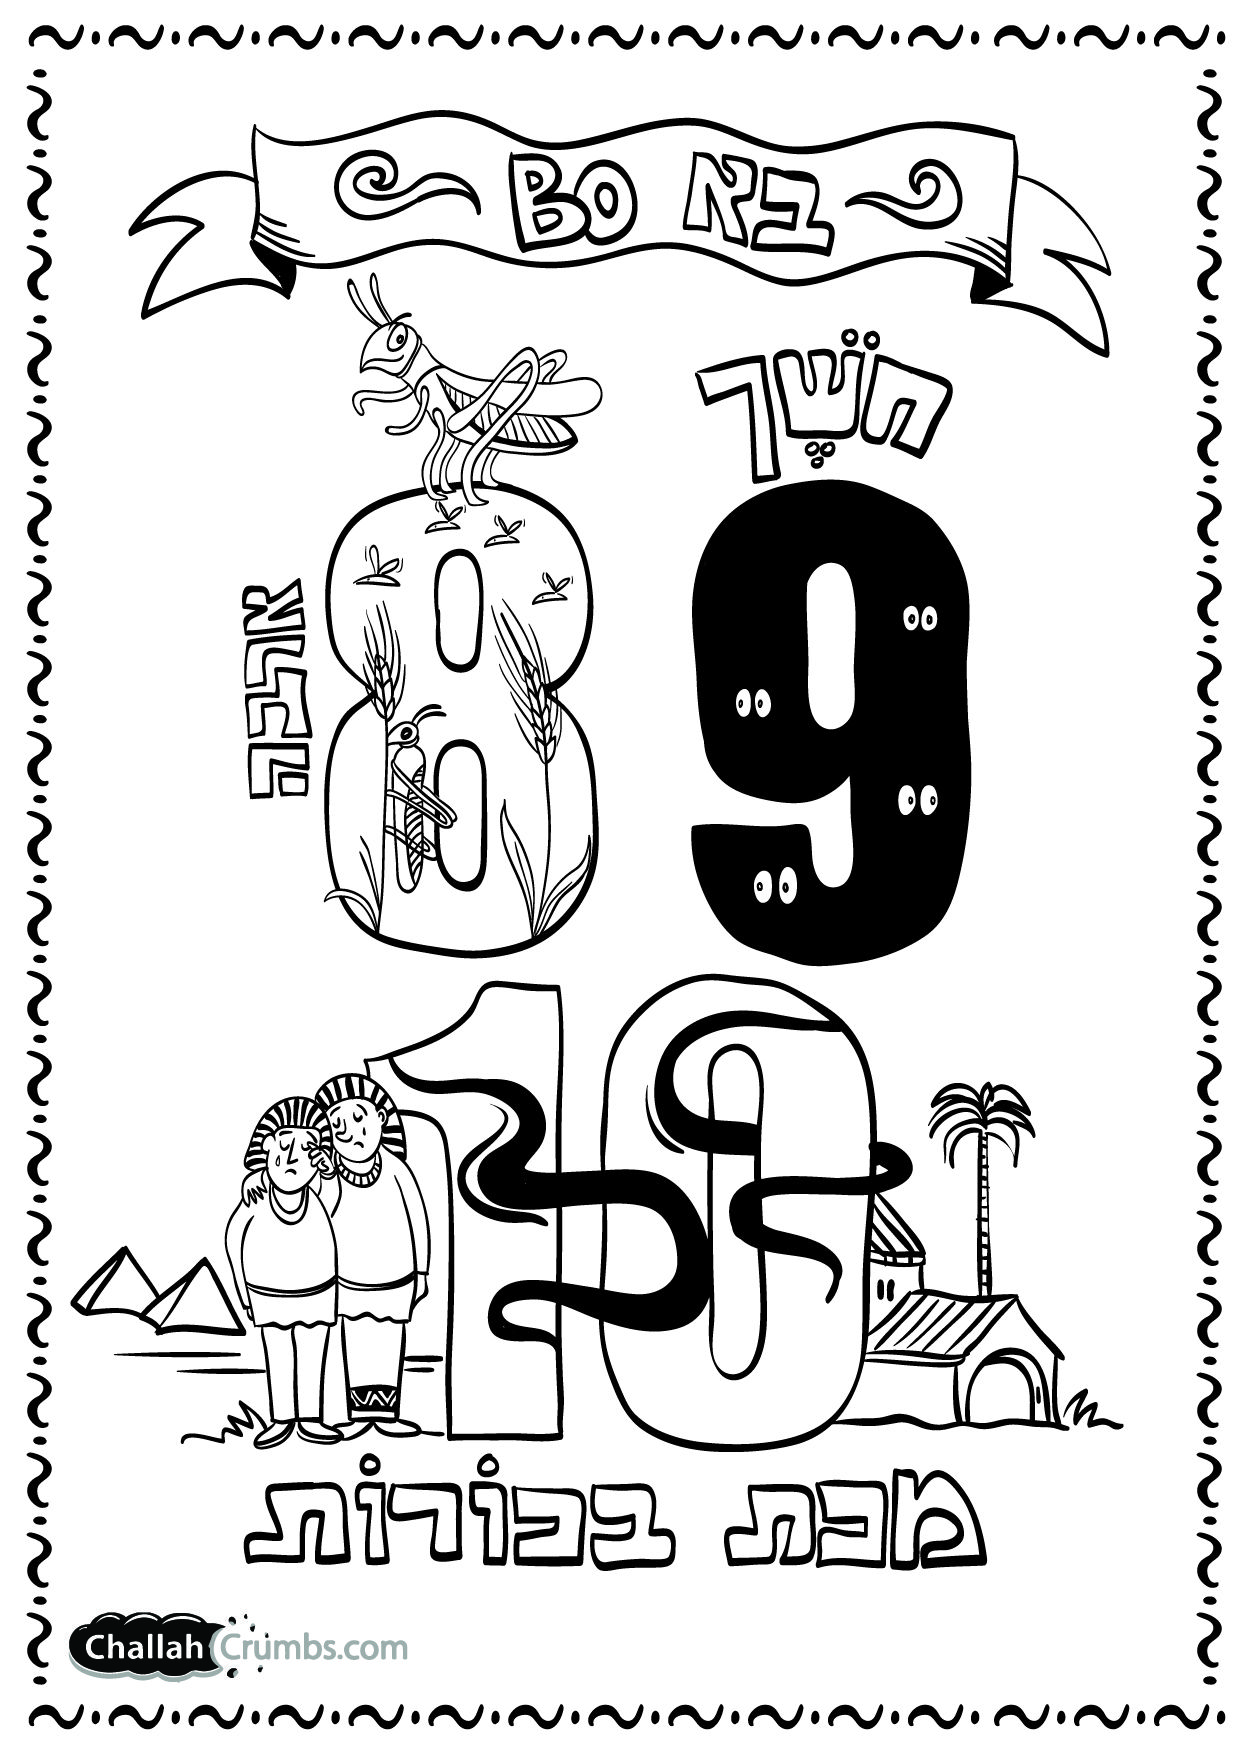 Parshat Bo Coloring Page Click On Page To Print Challah Crumbs Coloring Pages Bible Crafts 10 Plagues